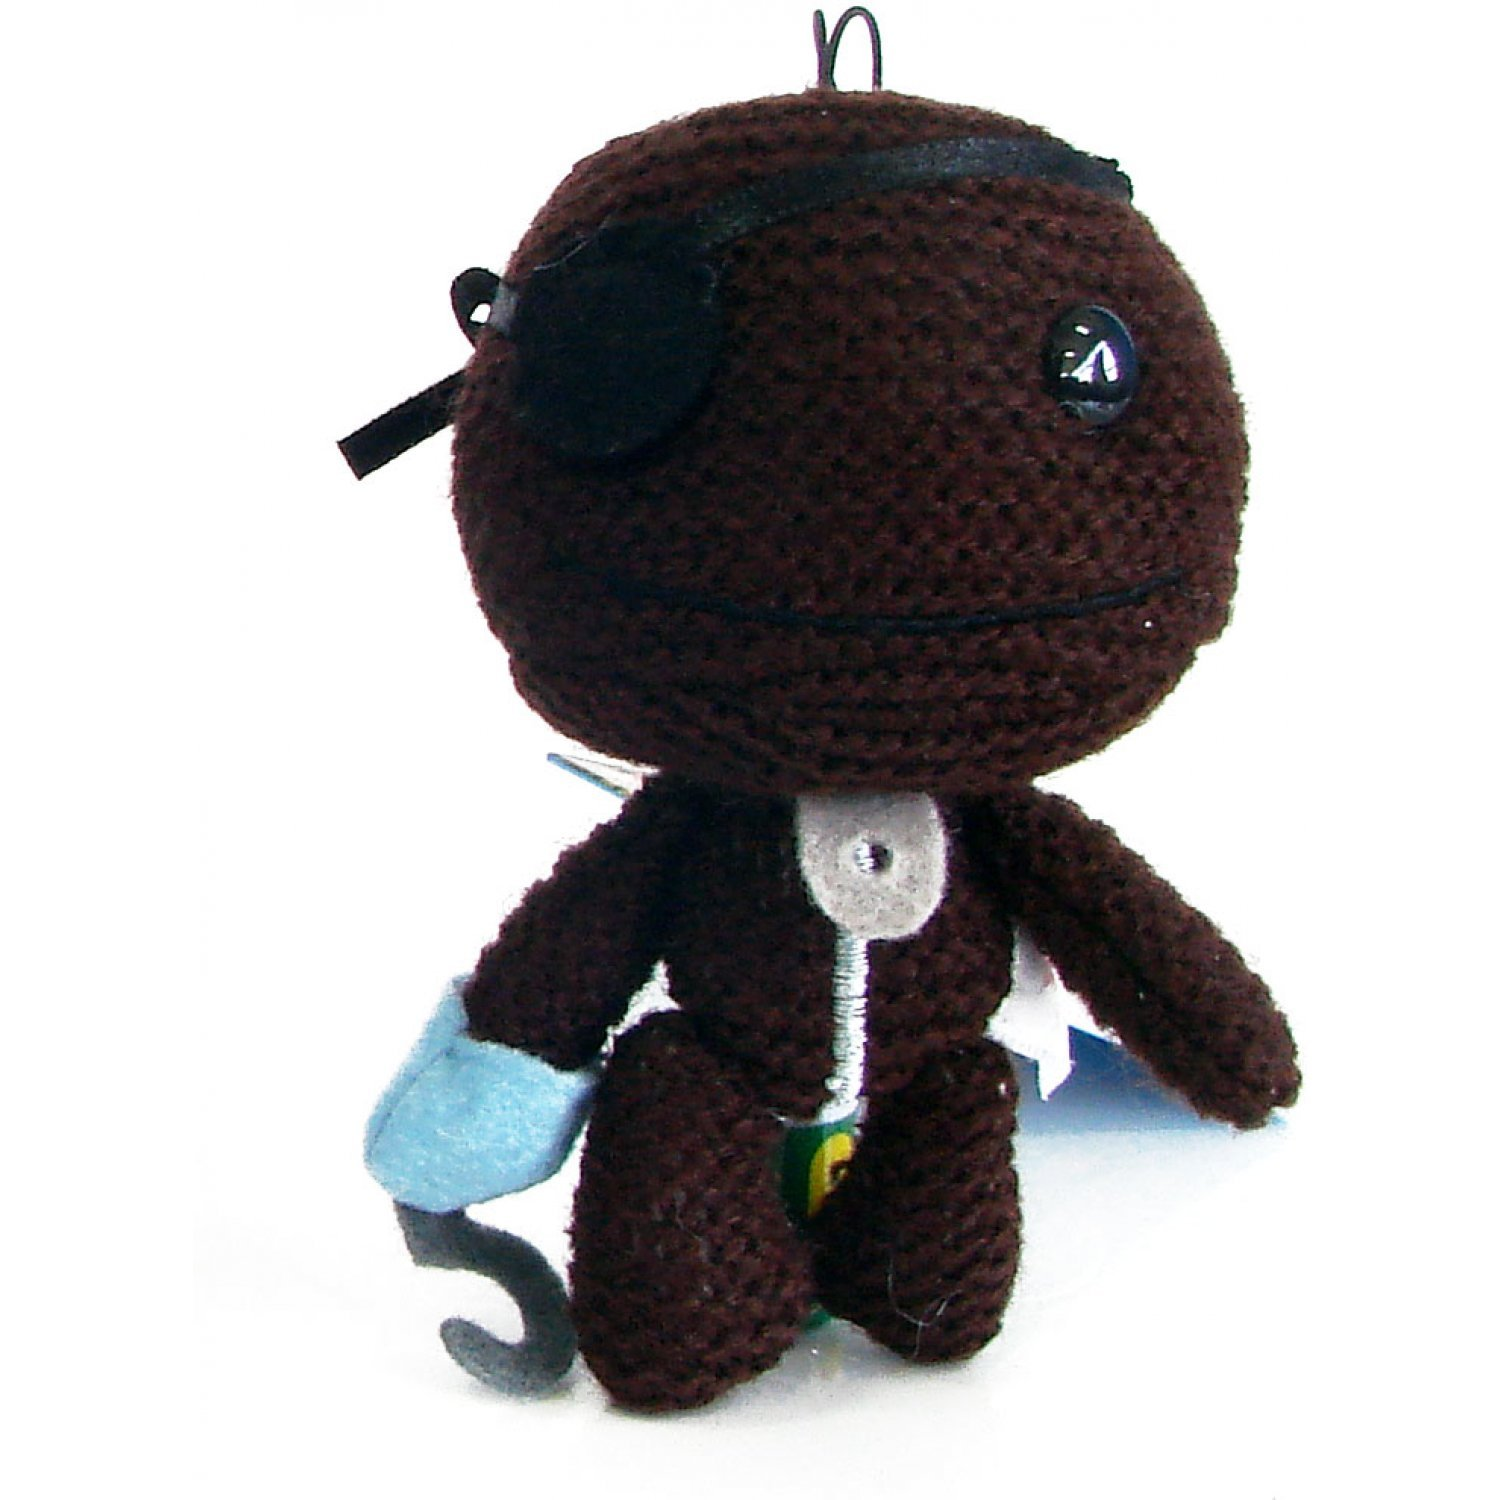 Little Big Planet Plush Toys Dolls ~ Figures ~ Keychains Due to the popularity of this video game, an entire line of Little Big Planet plush dolls and toys have been released.